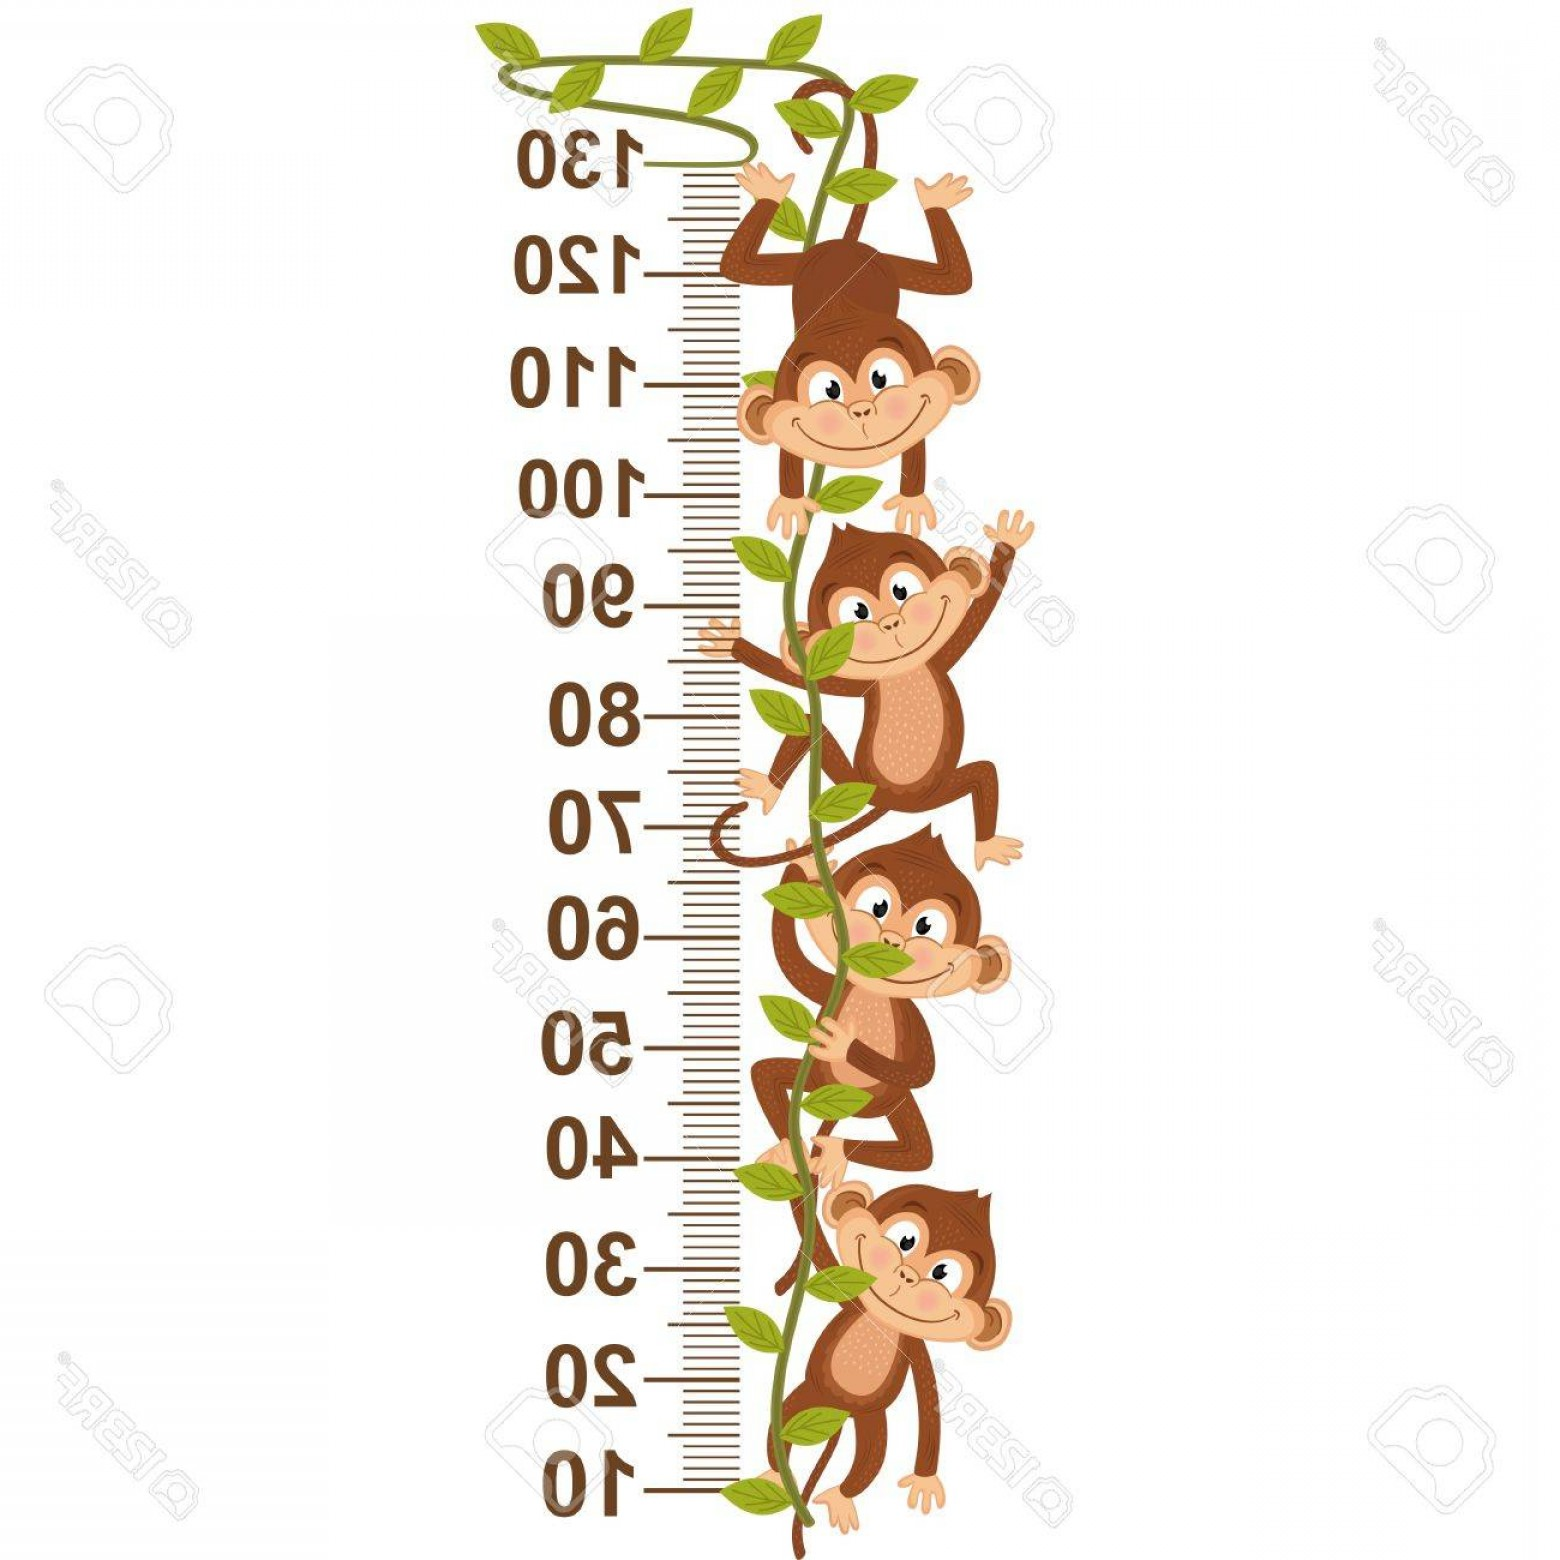 Vine Vector Graphics: Photostock Vector Growth Measure With Monkey On Vine Vector Illustration Eps